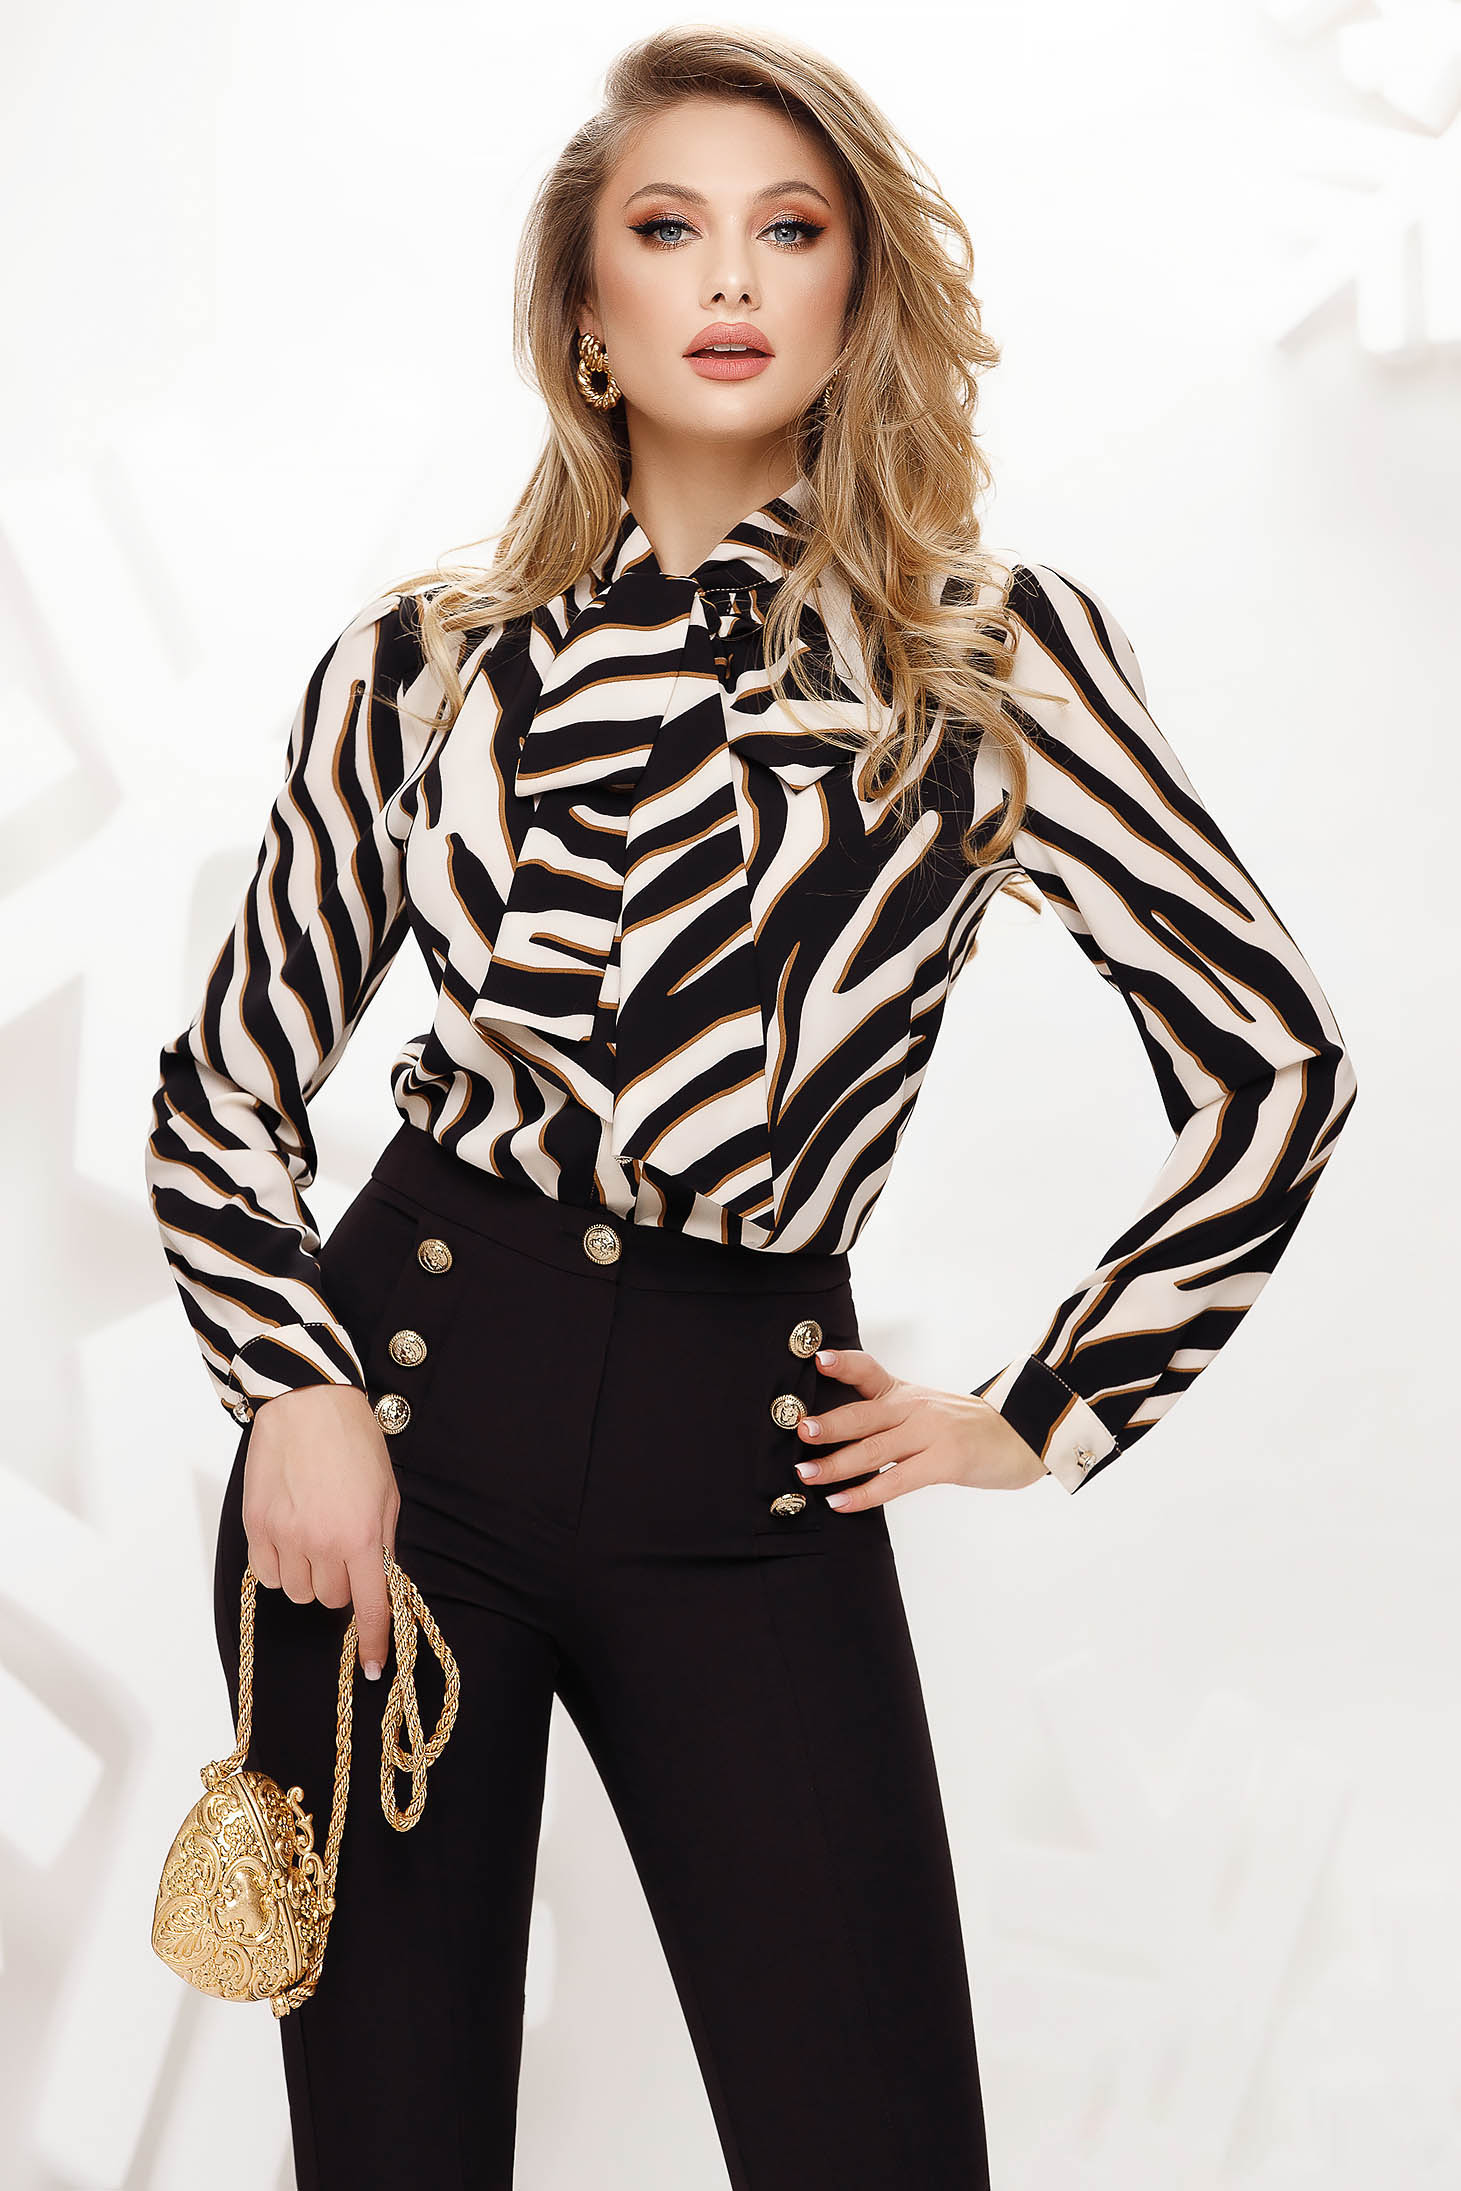 Women`s blouse thin fabric office nonelastic fabric long sleeve loose fit